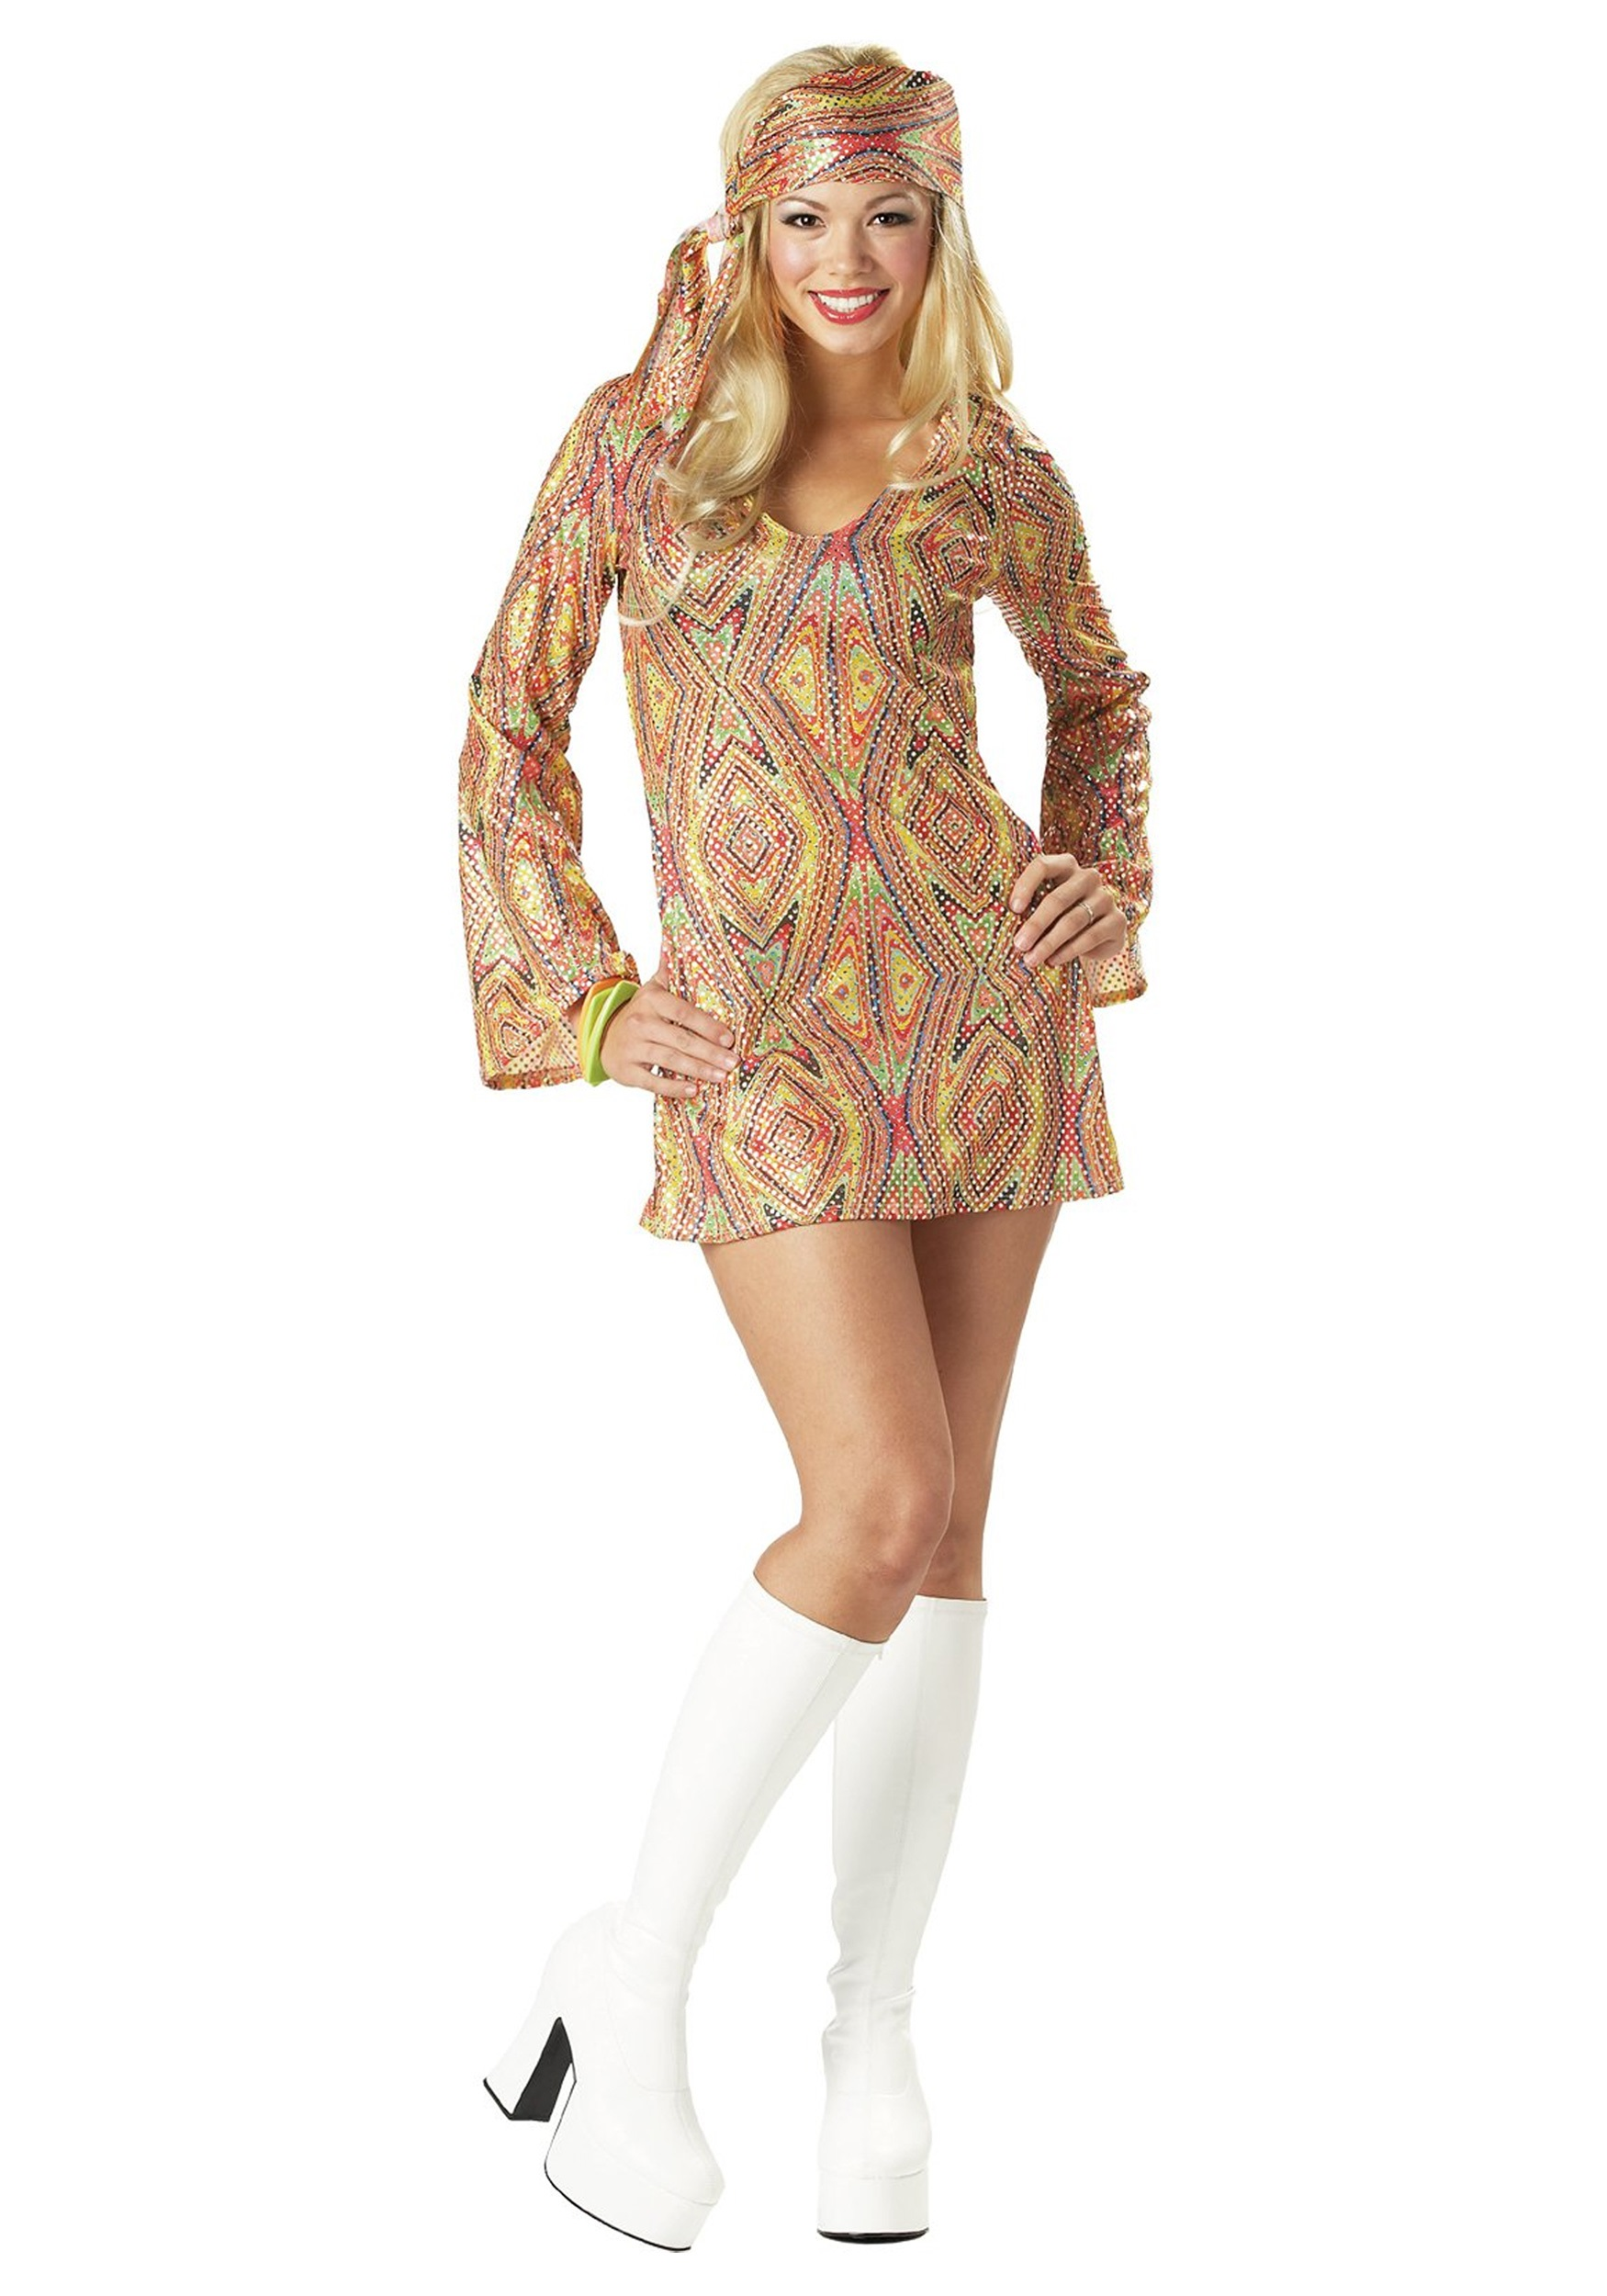 70s Disco Fashion: Disco Clothes, Outfits for Girls and Guys 24